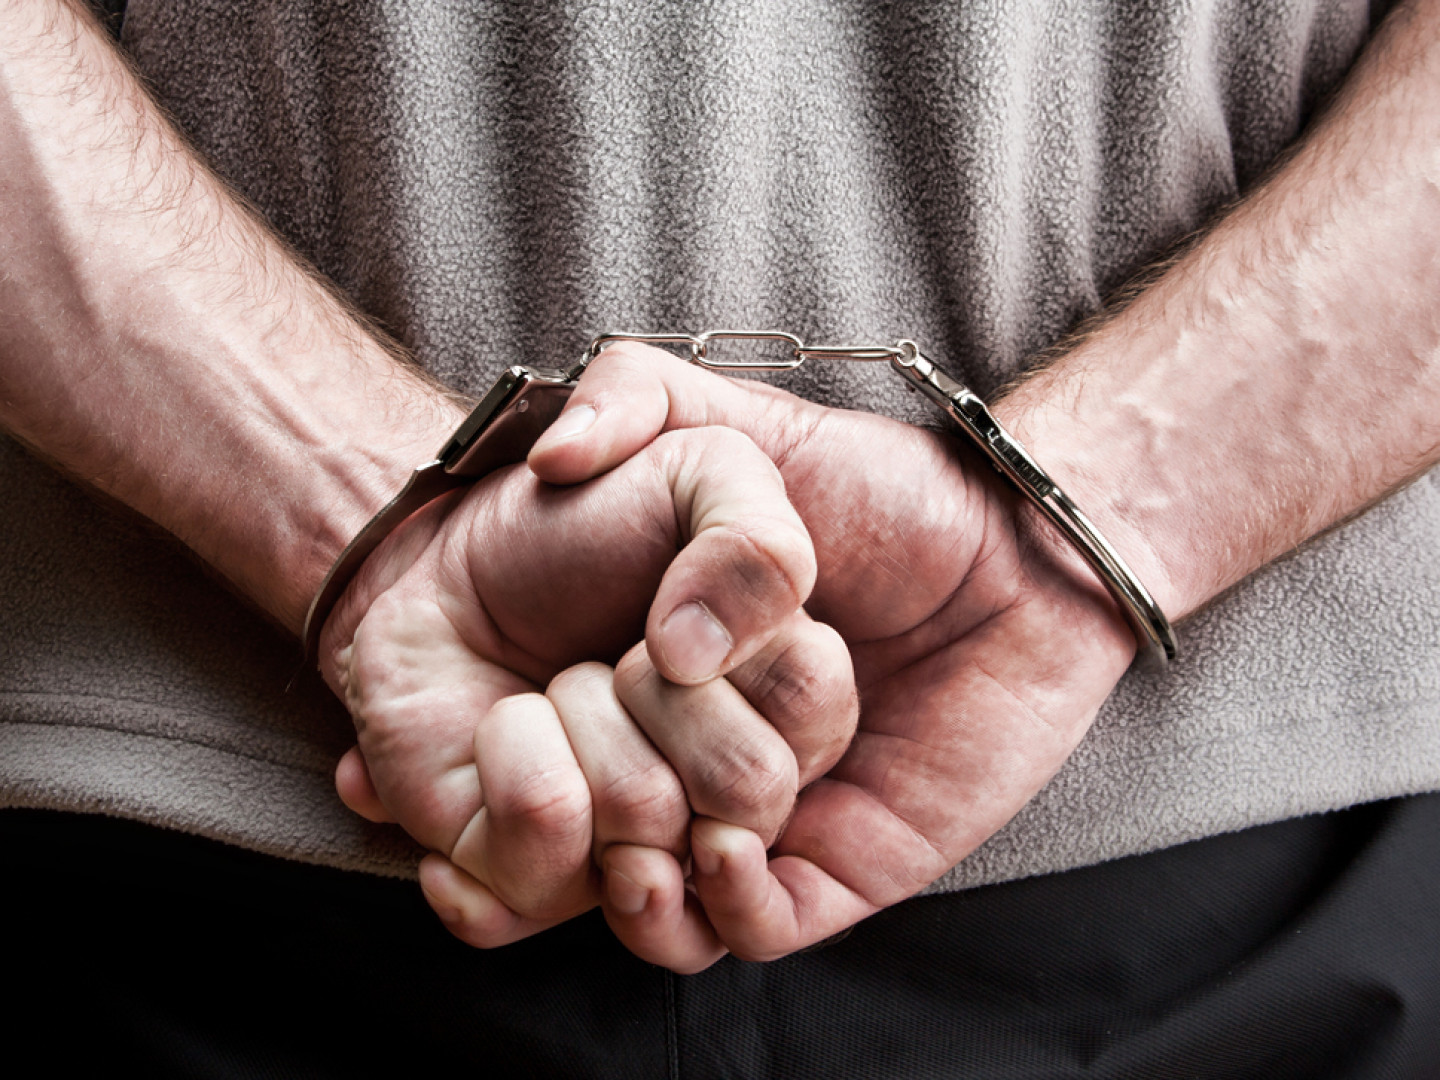 Not Sure Where to Turn When Facing Criminal Charges?